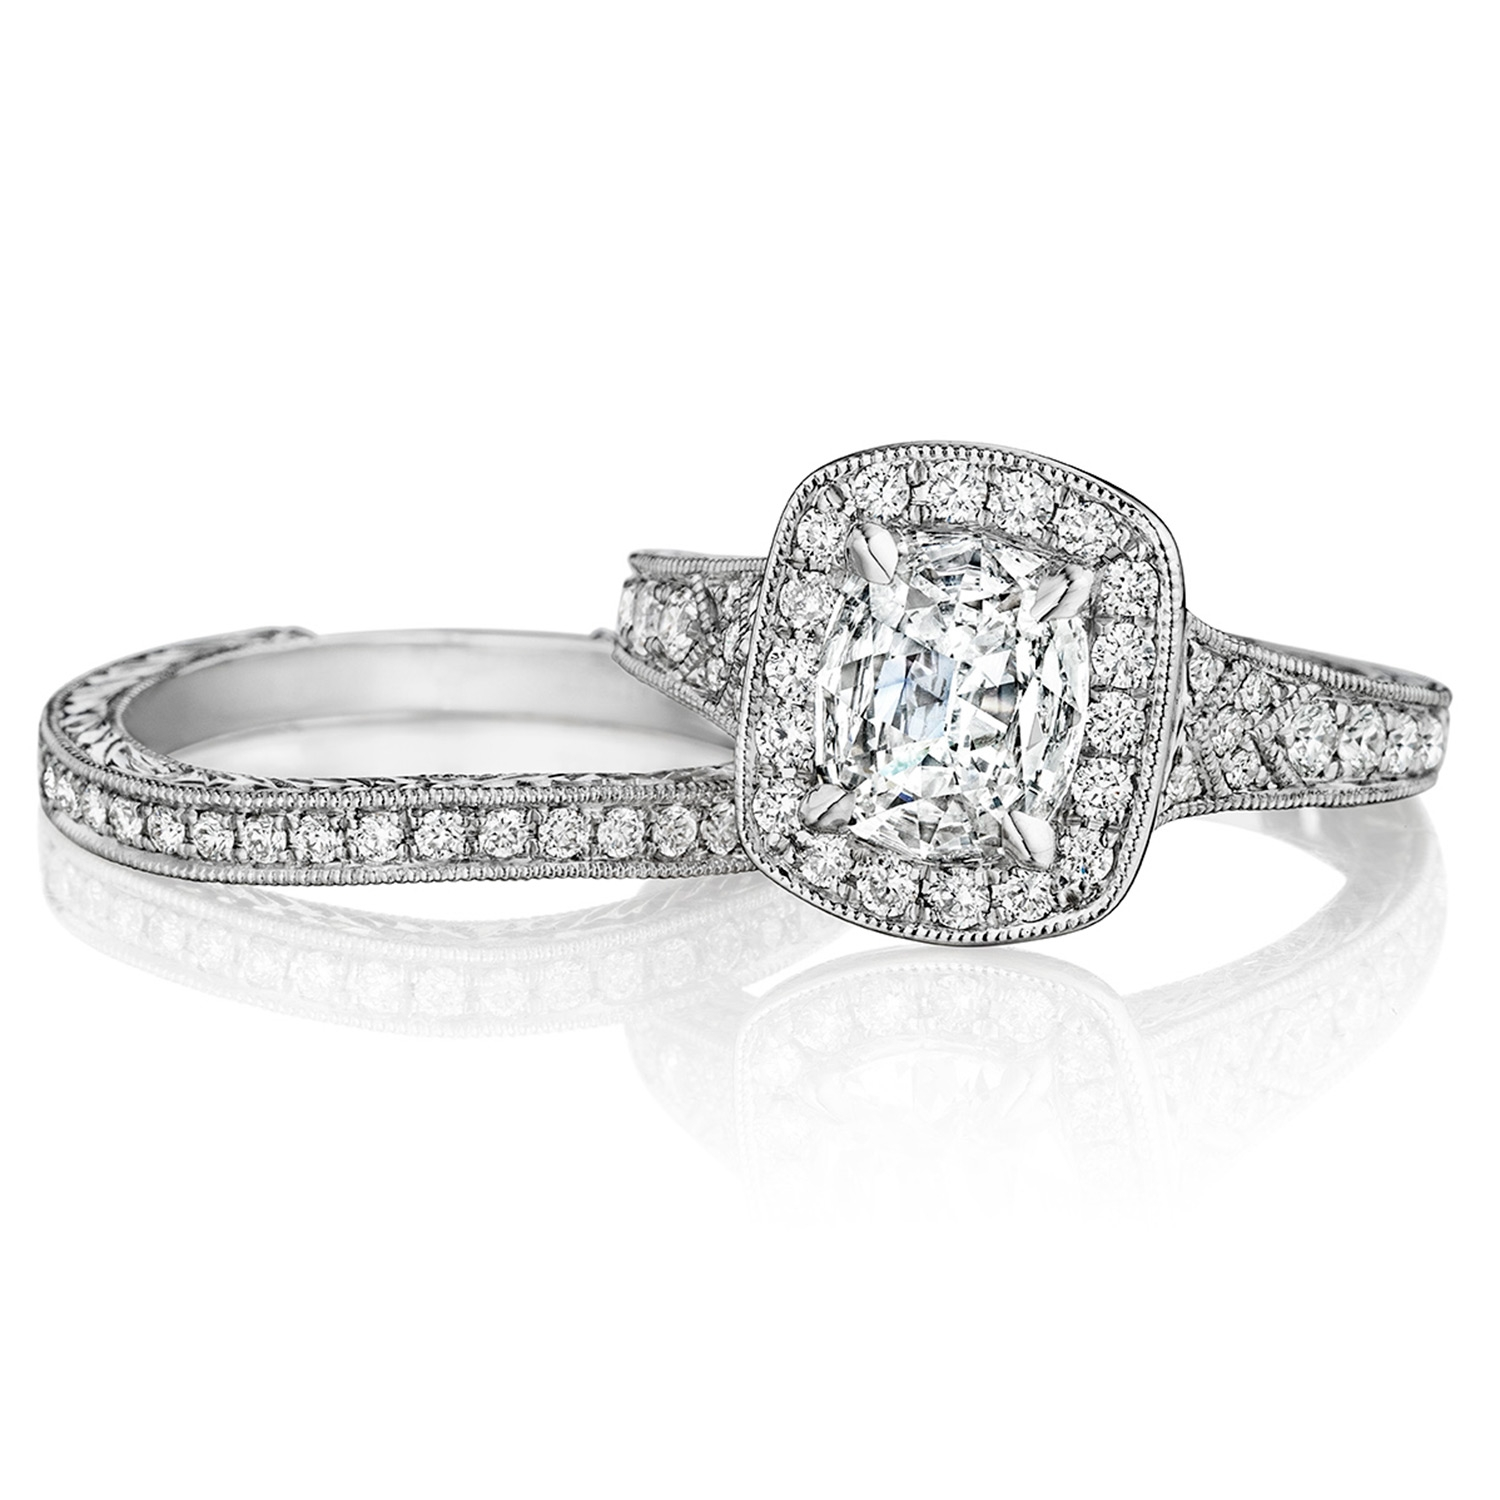 Henri Daussi AZP Cushion Halo Graduated Accent Diamonds Engagement Ring Alternative View 2